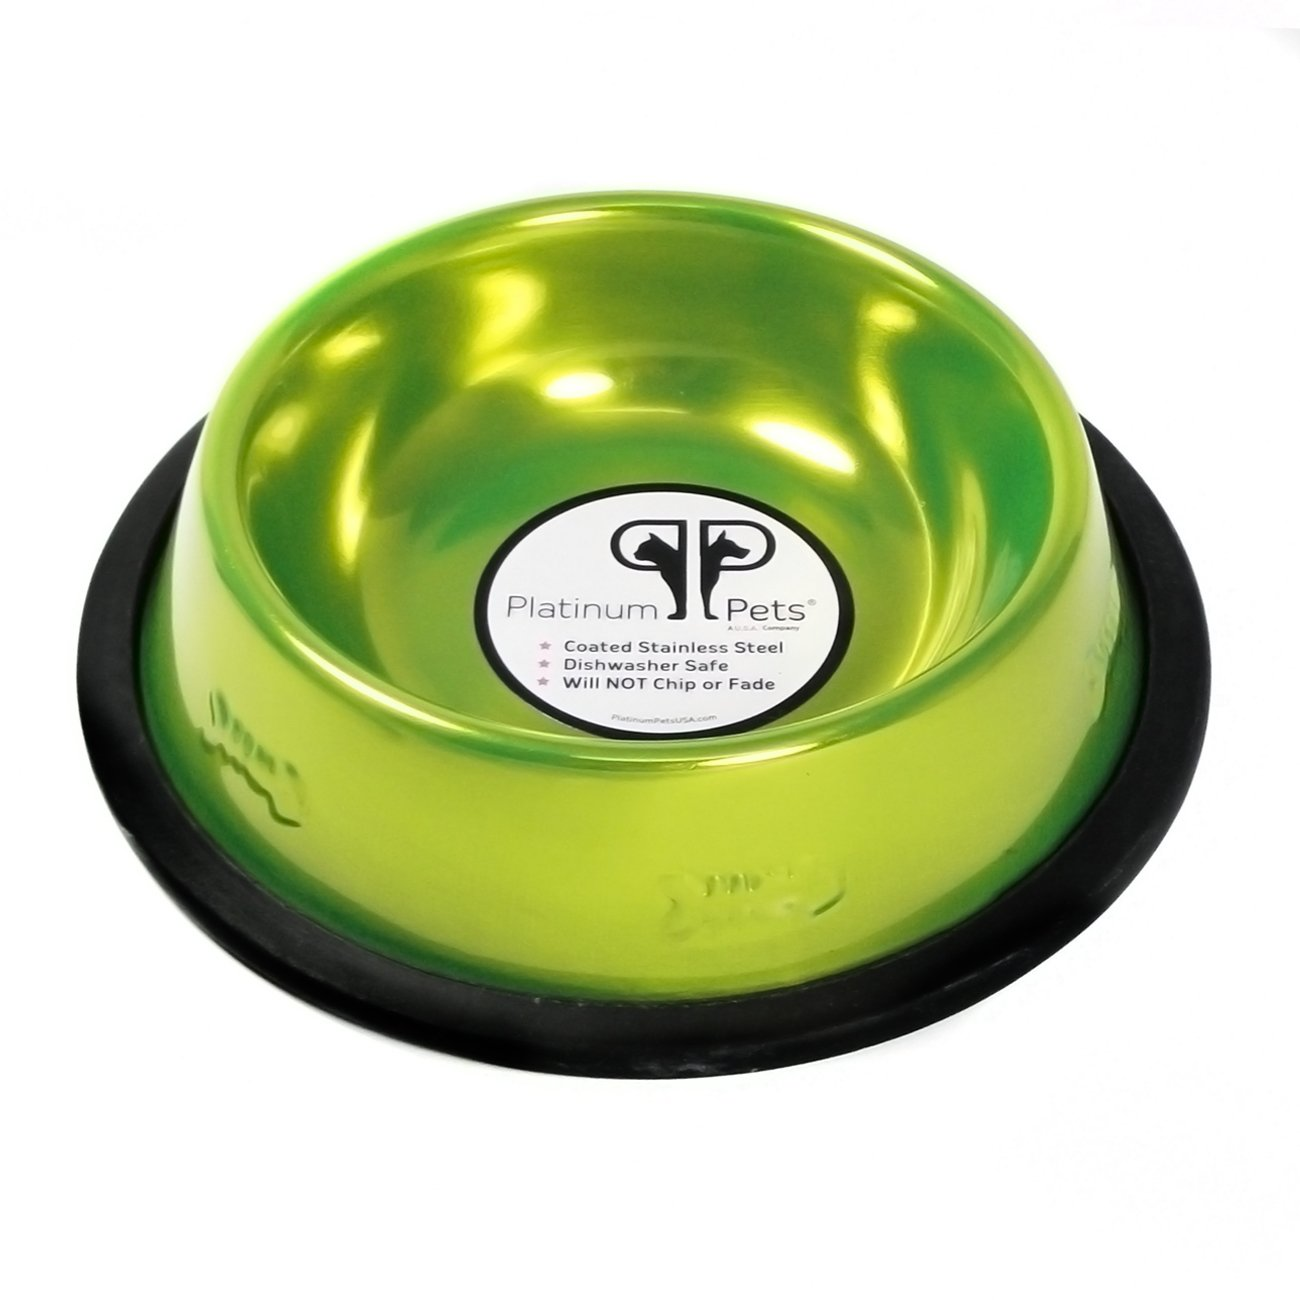 Platinum Pets Non-tip Stainless Steel Cat Bowl, 6 oz, Lime